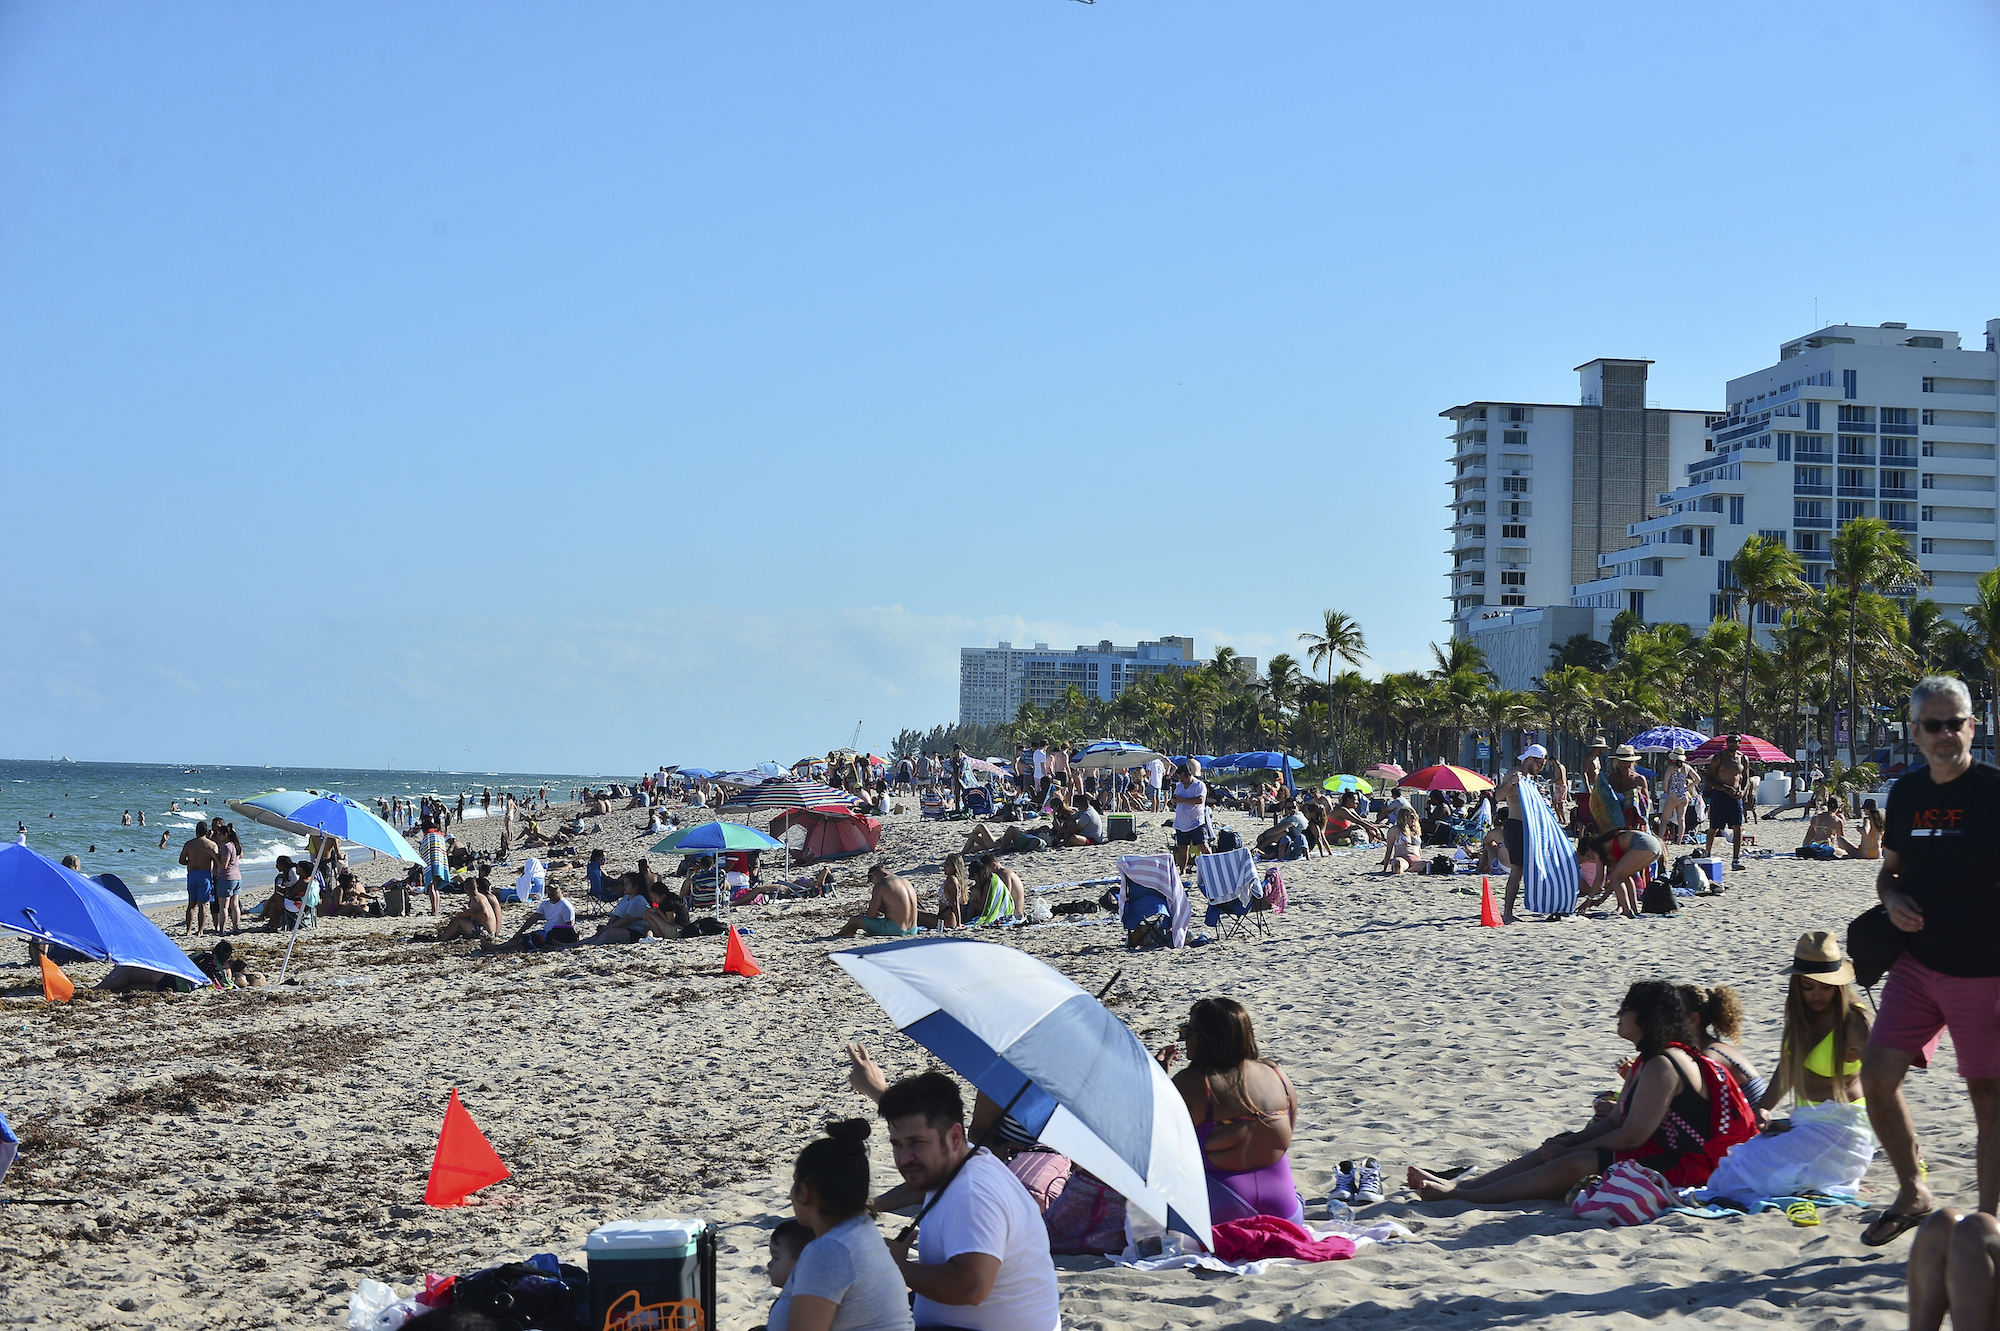 <p>Florida Reports Close to 12,000 Covid Cases Caused by Variants, Most in US thumbnail